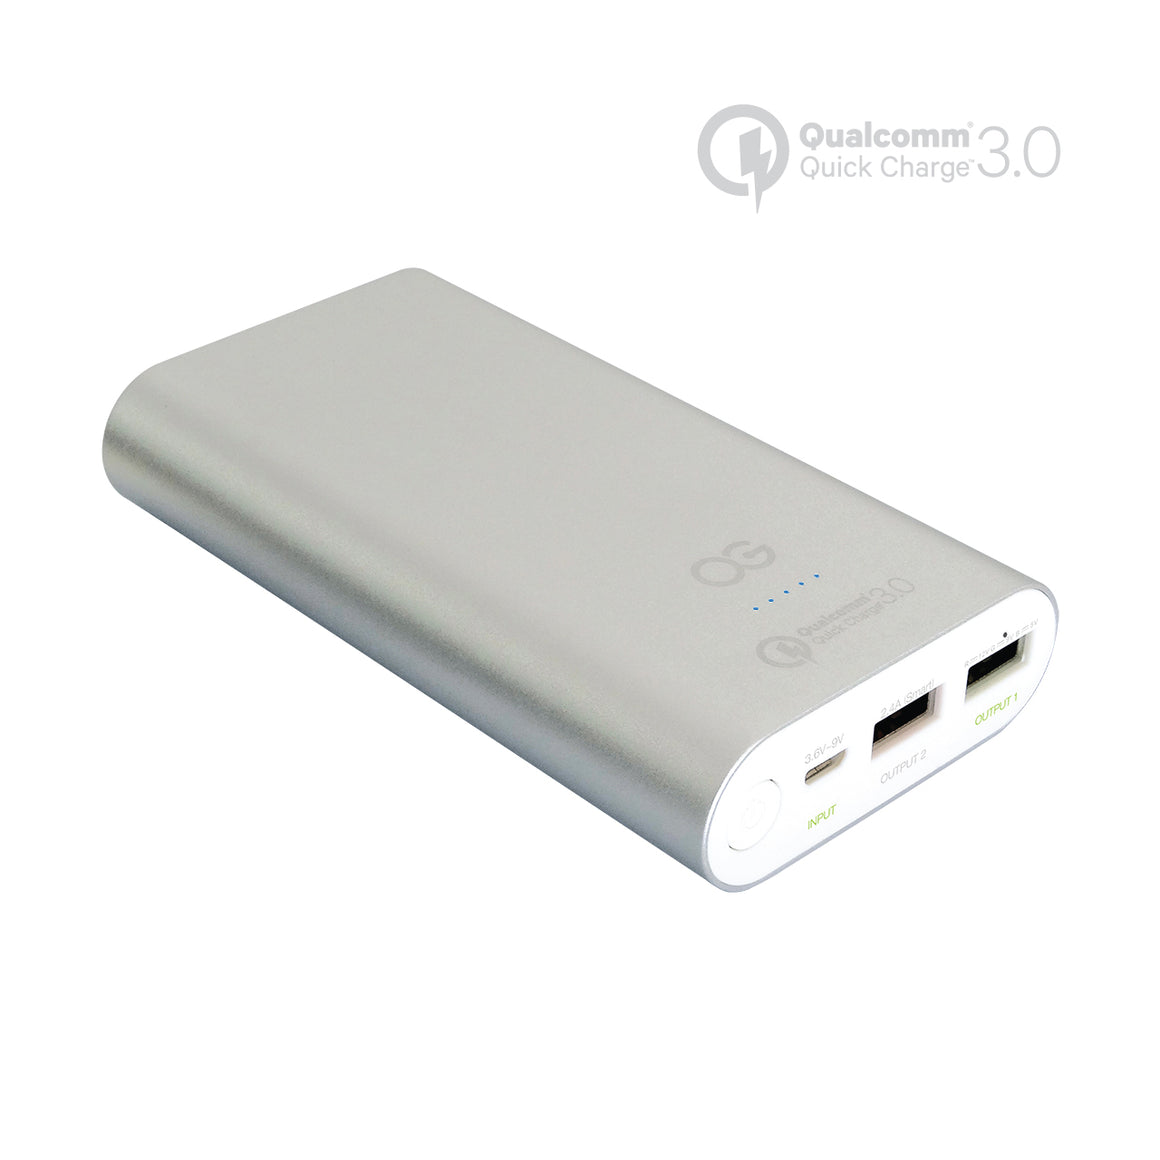 Omnigates 10200mAh Portable Battery with Qualcomm Quick Charge 3.0